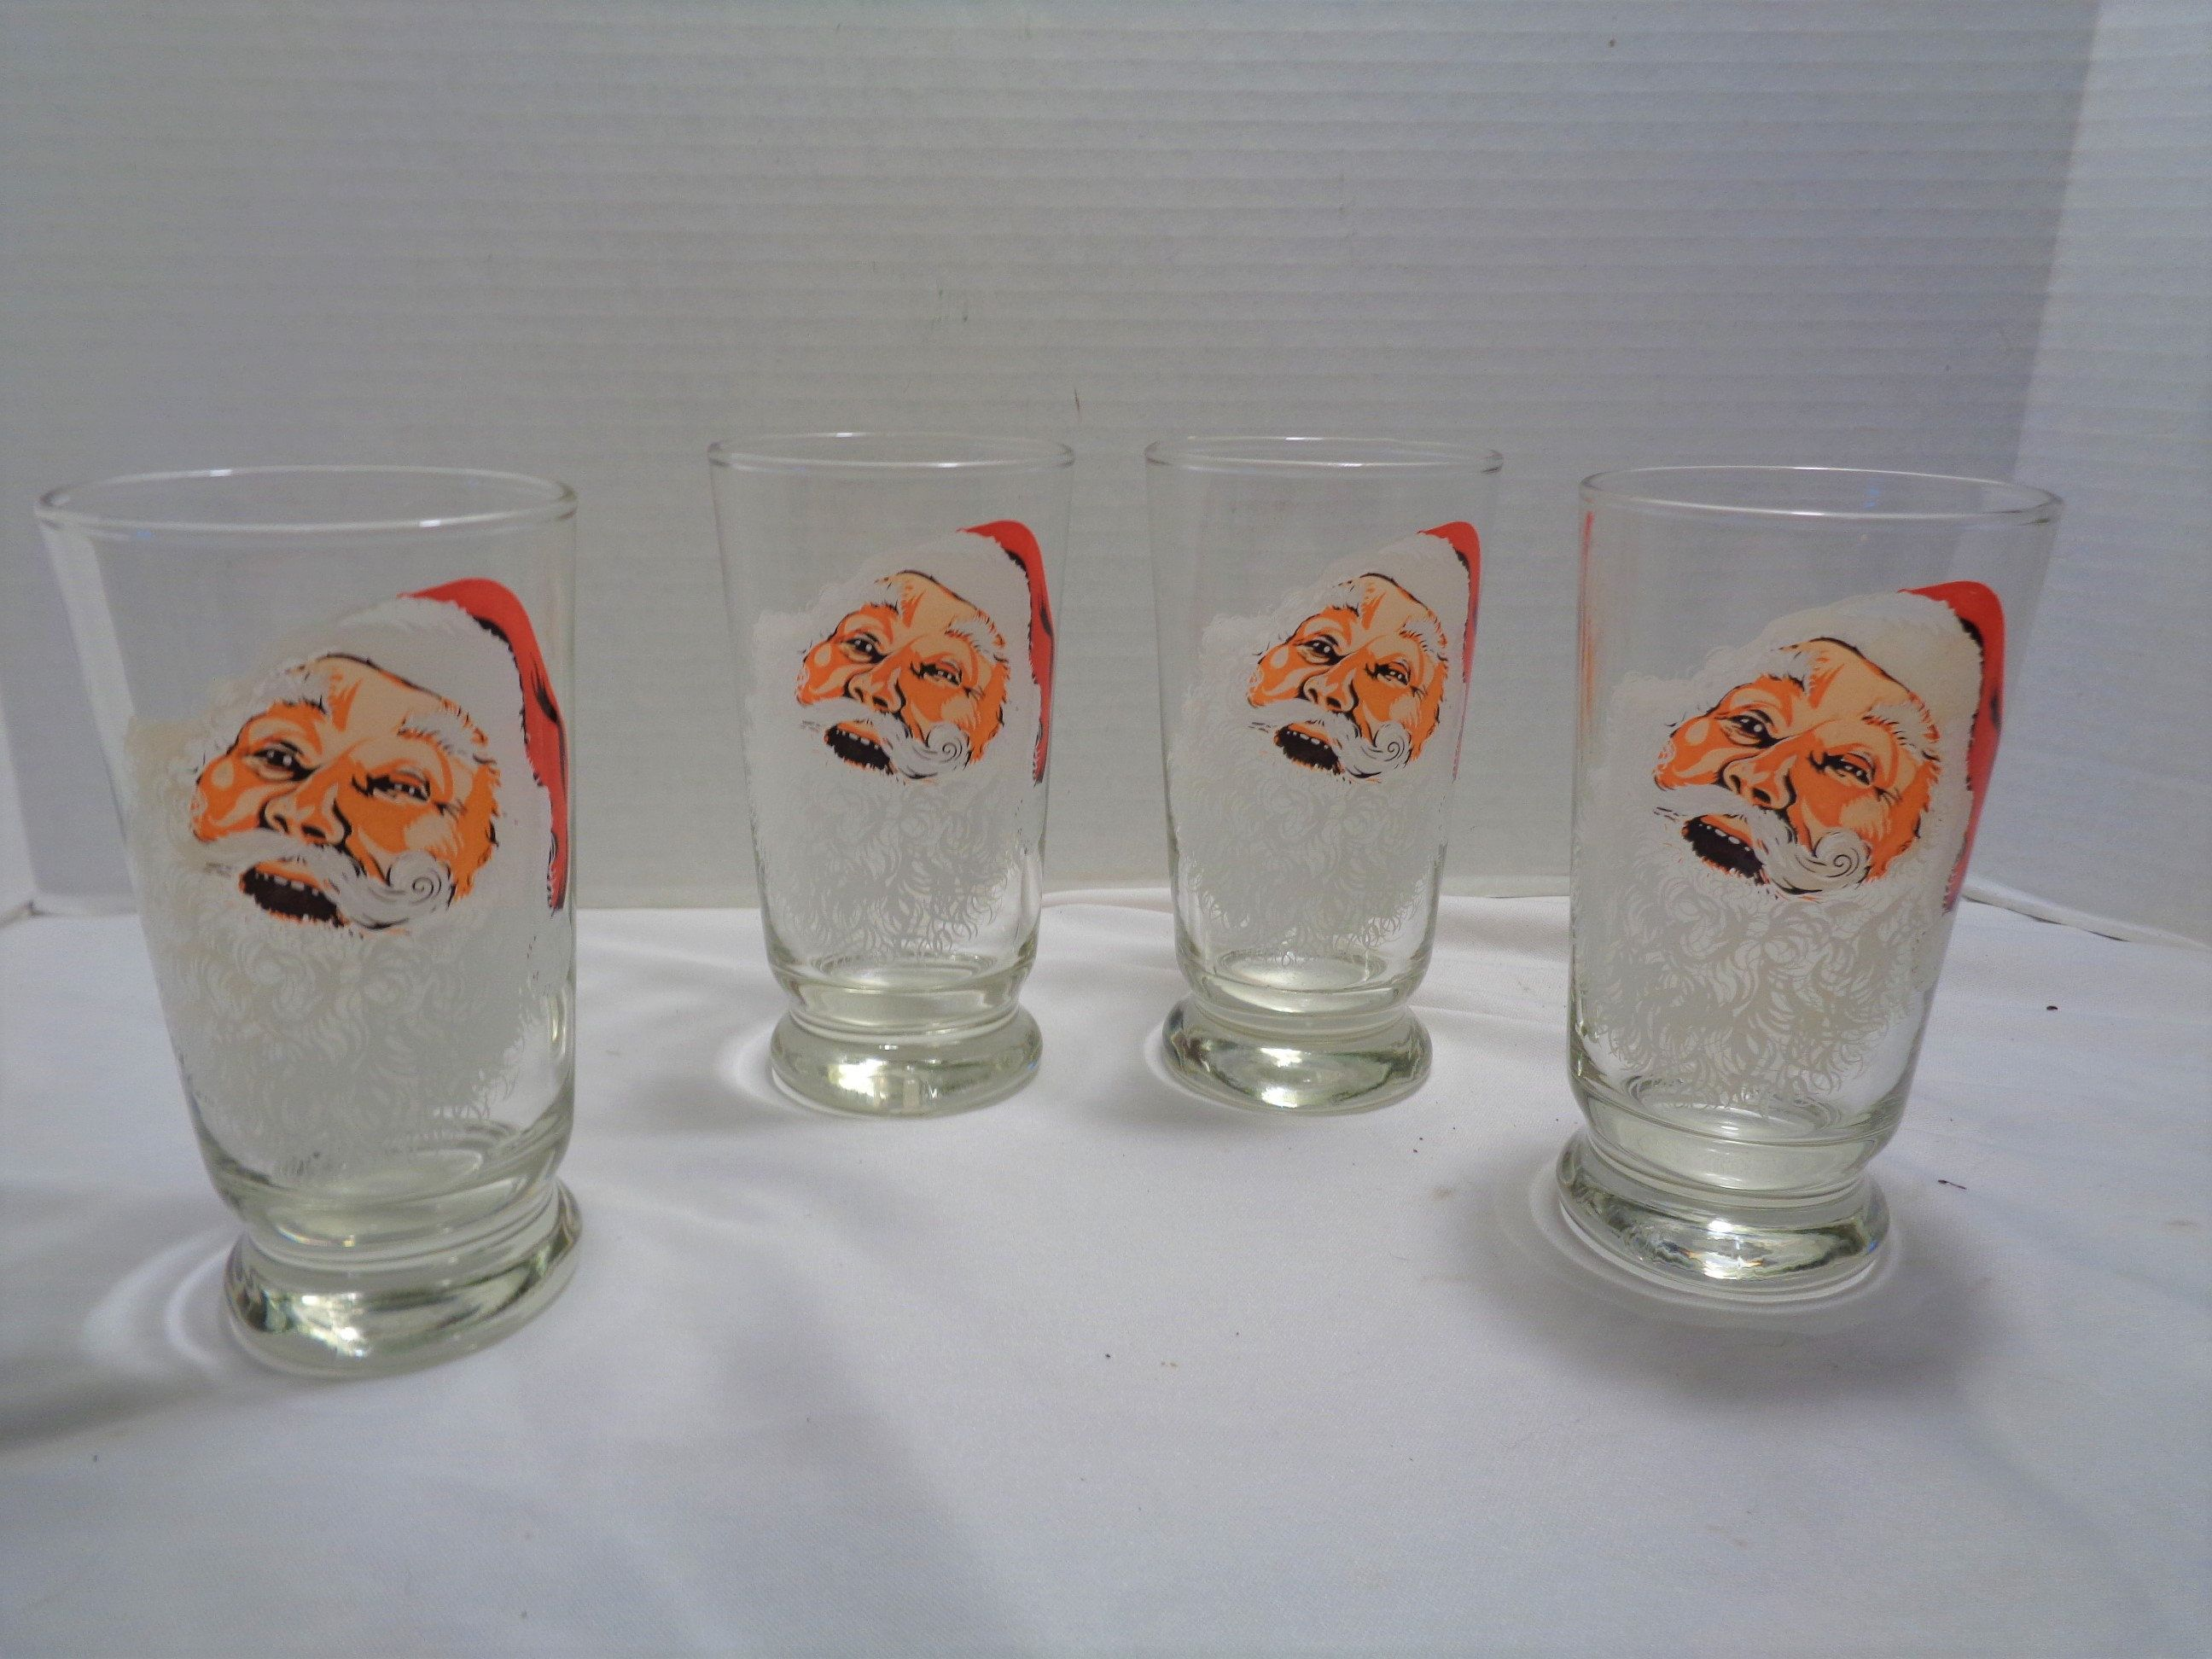 Vintage Santa Claus Christmas Holiday Drinking Glasses Set Of 4